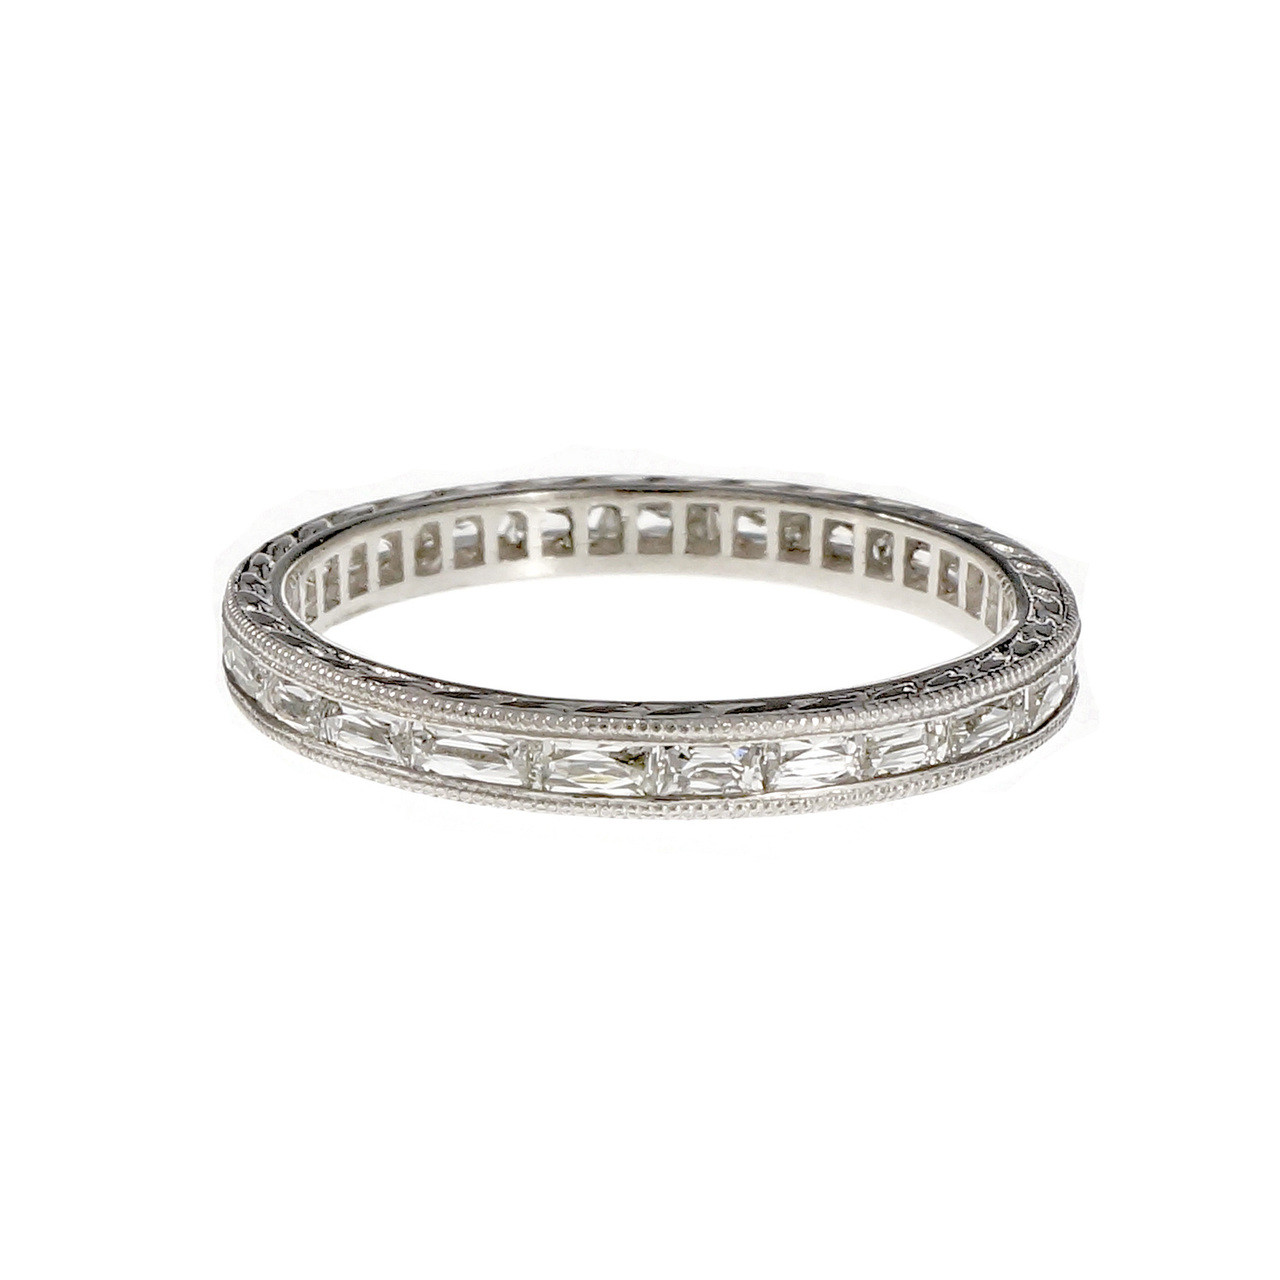 2241cf8963882 Peter Suchy French Cut Baguette Diamond Wedding Band Platinum Antique  Inspired